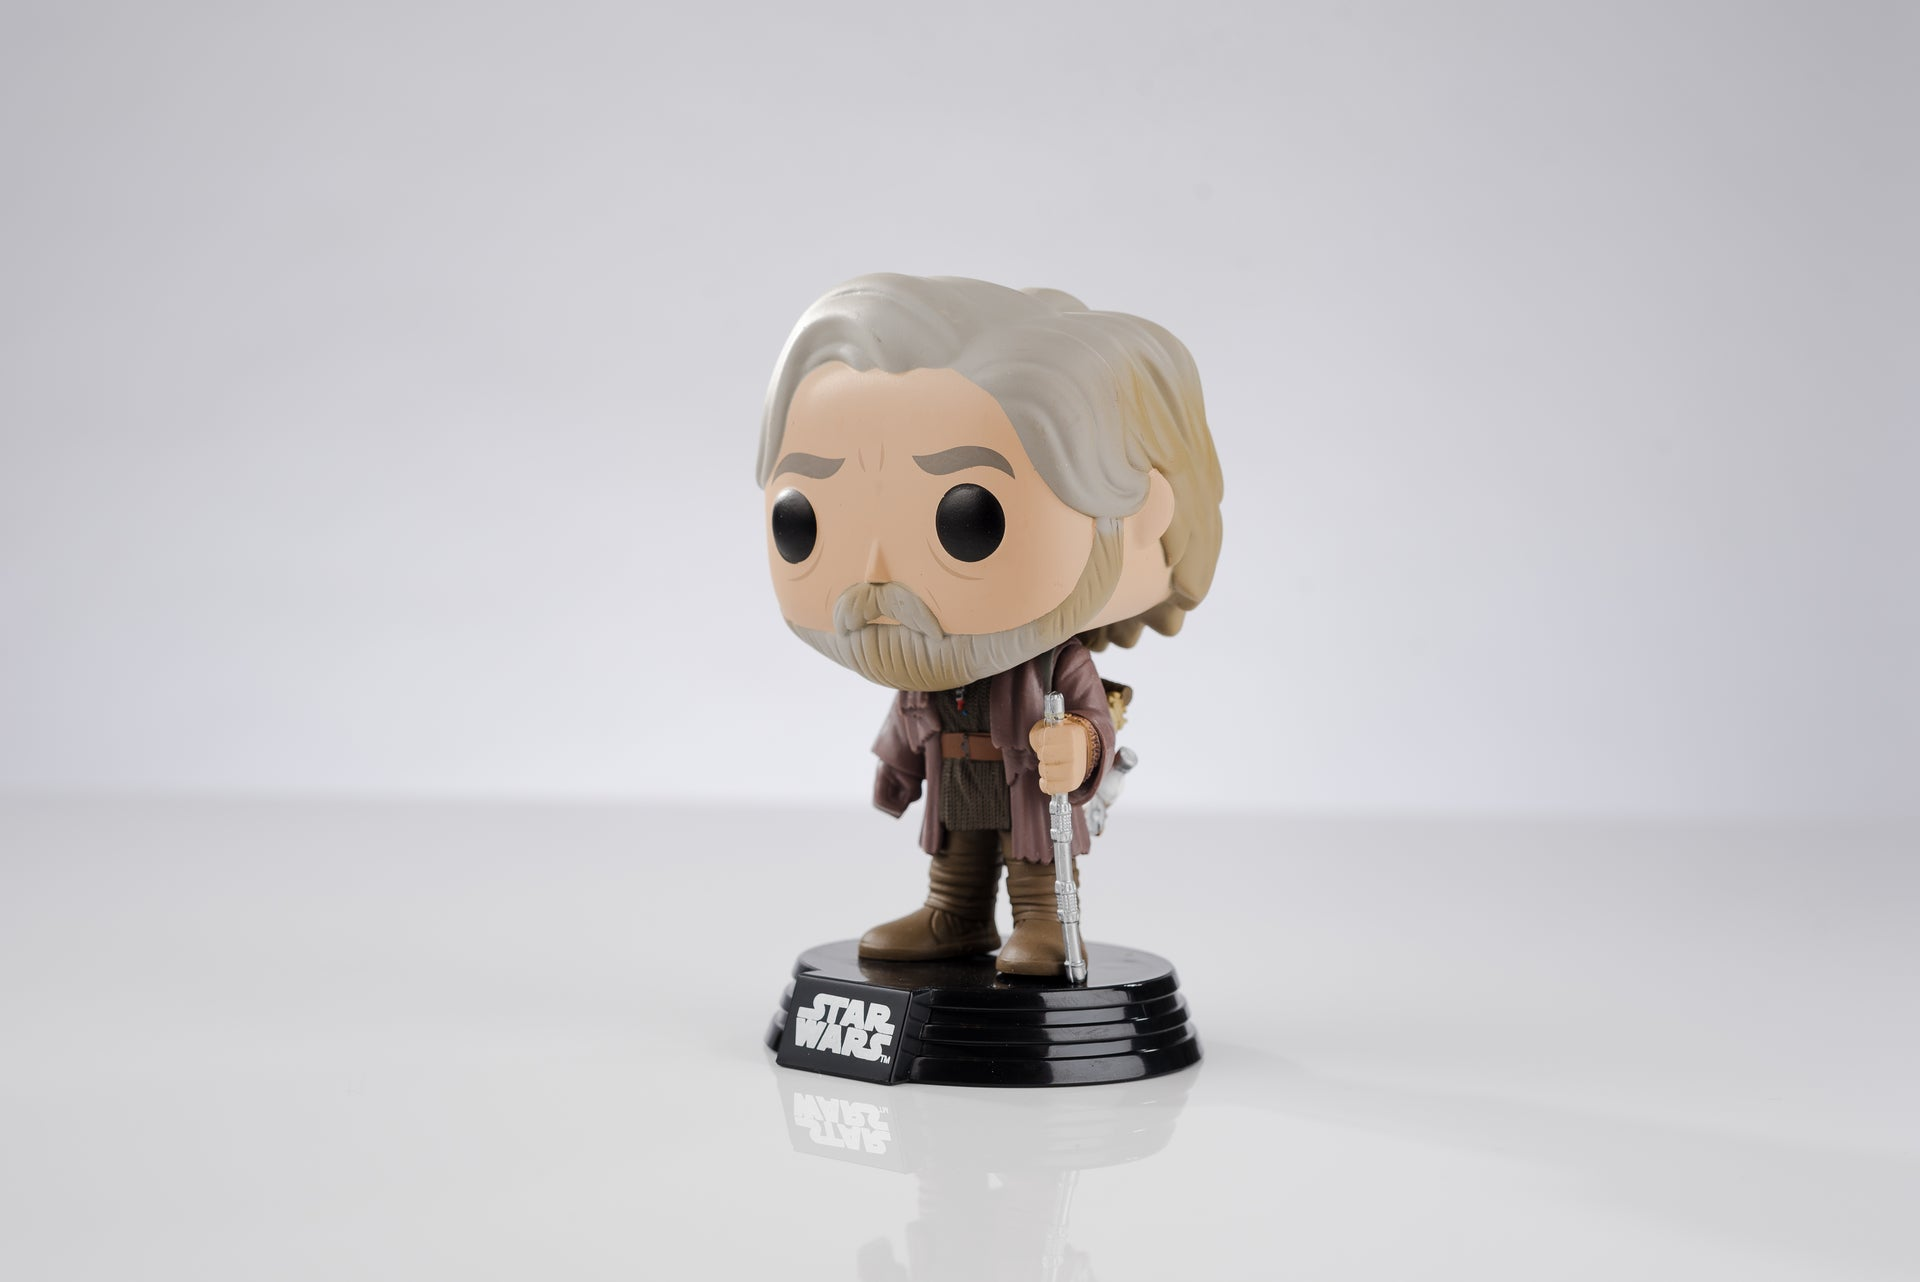 Star wars bobble head Pop! Vinyl Figure Luke Sykwalker